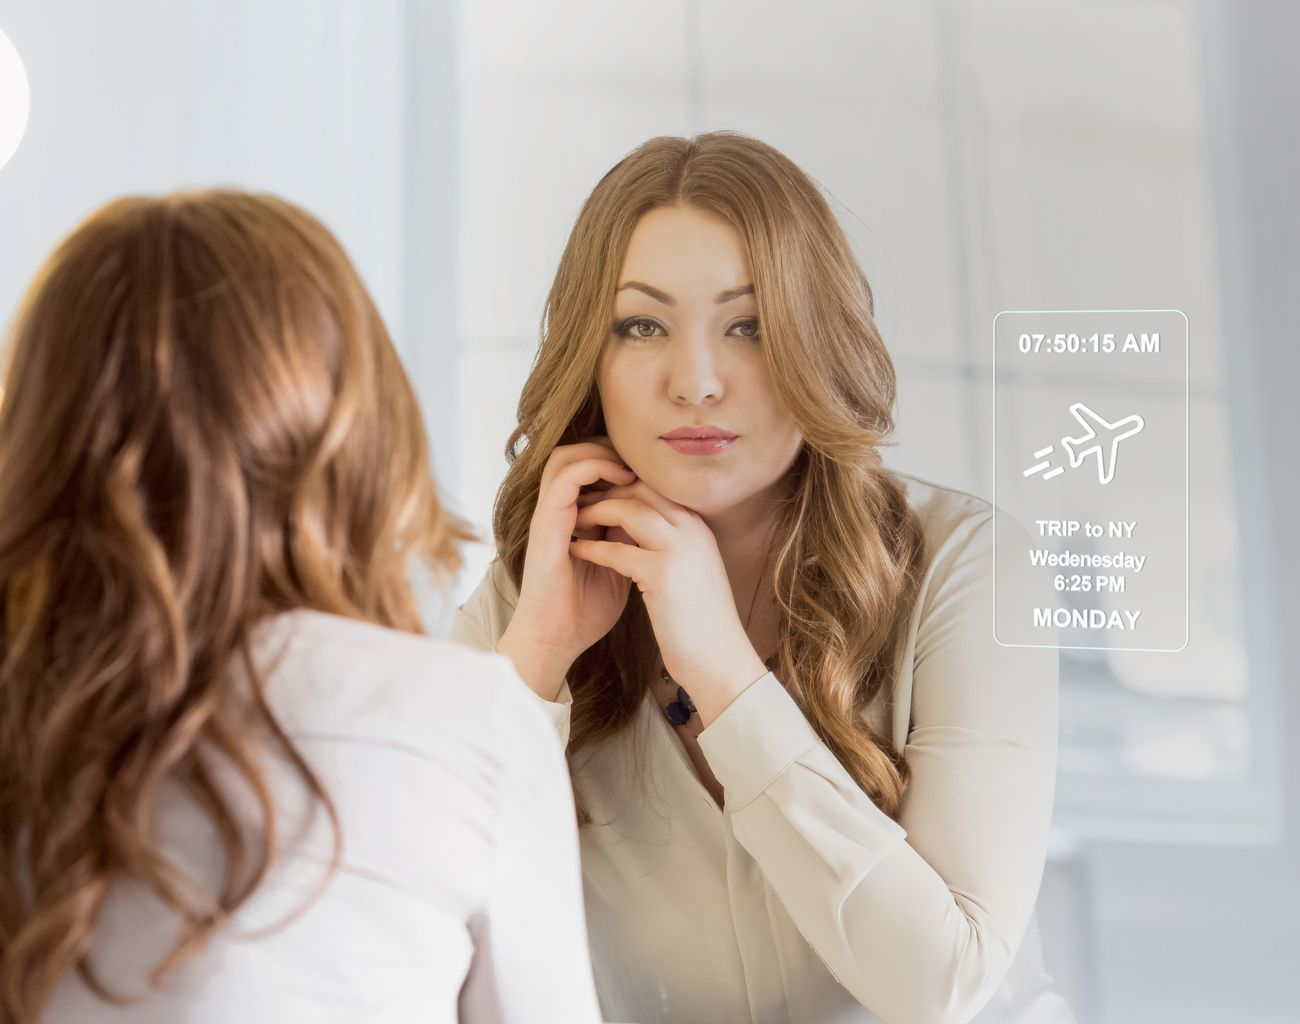 MirroCool Personal Assistant Smart Mirror